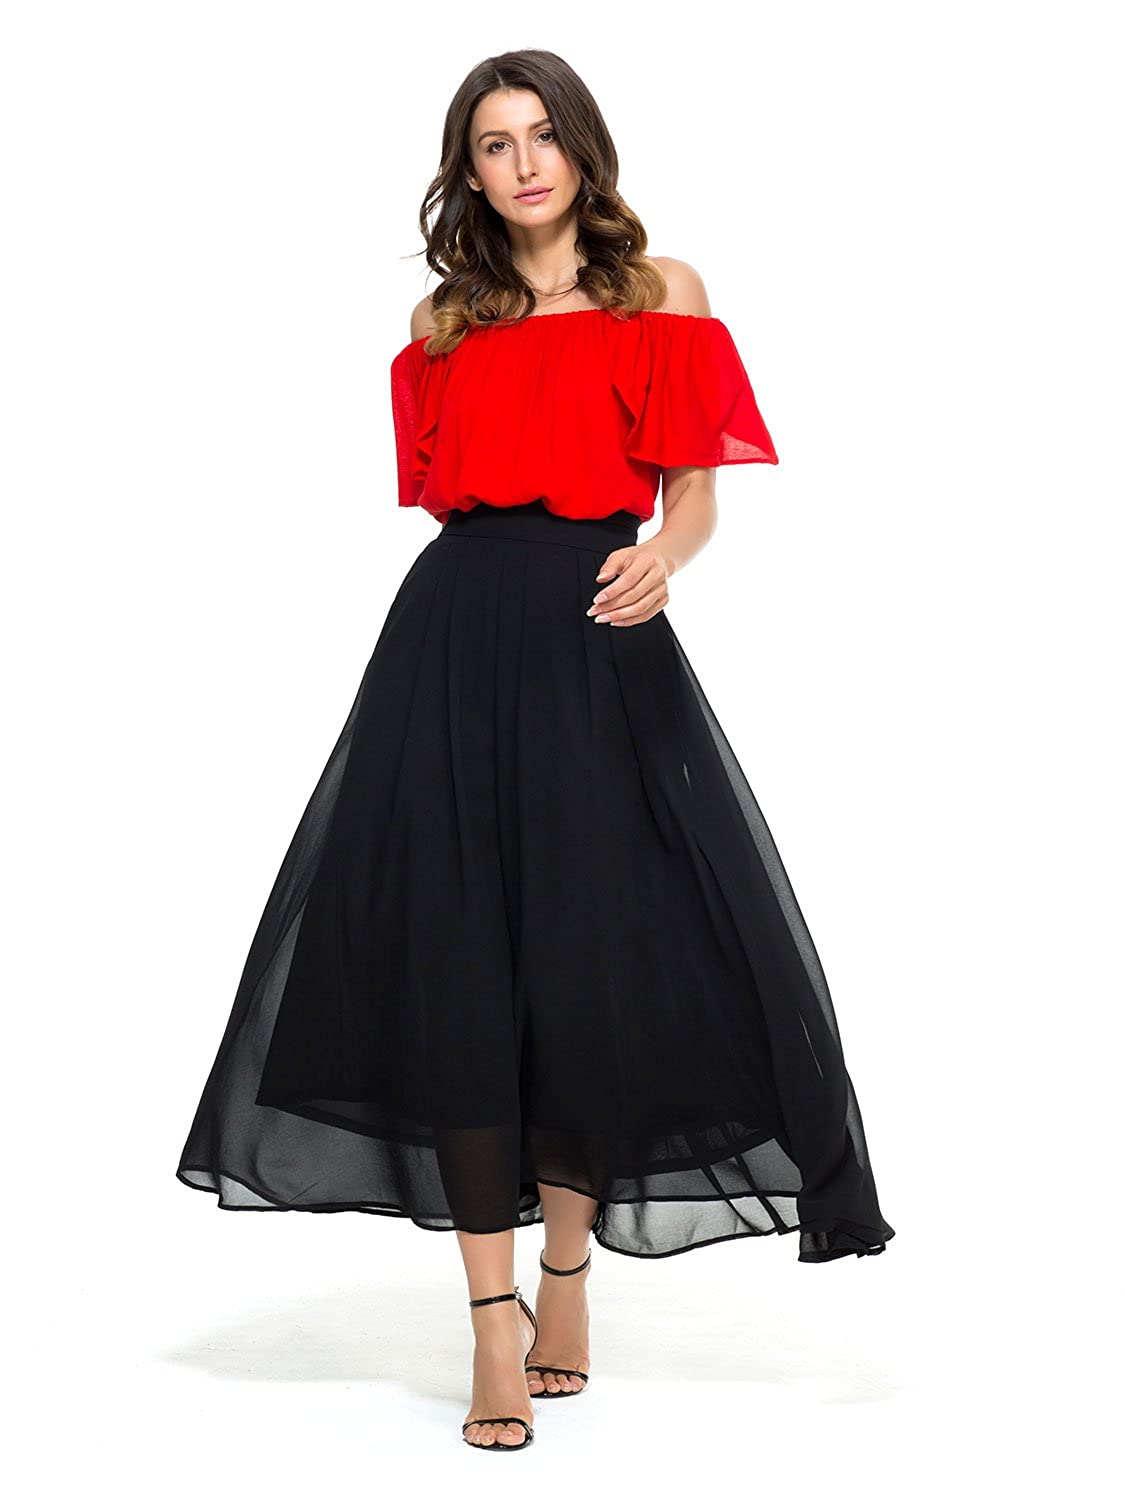 PERSUN Women s Maxi Skirts Casual Pleated A-Line Long Skirt at Amazon  Women s Clothing store  30ea51dd8